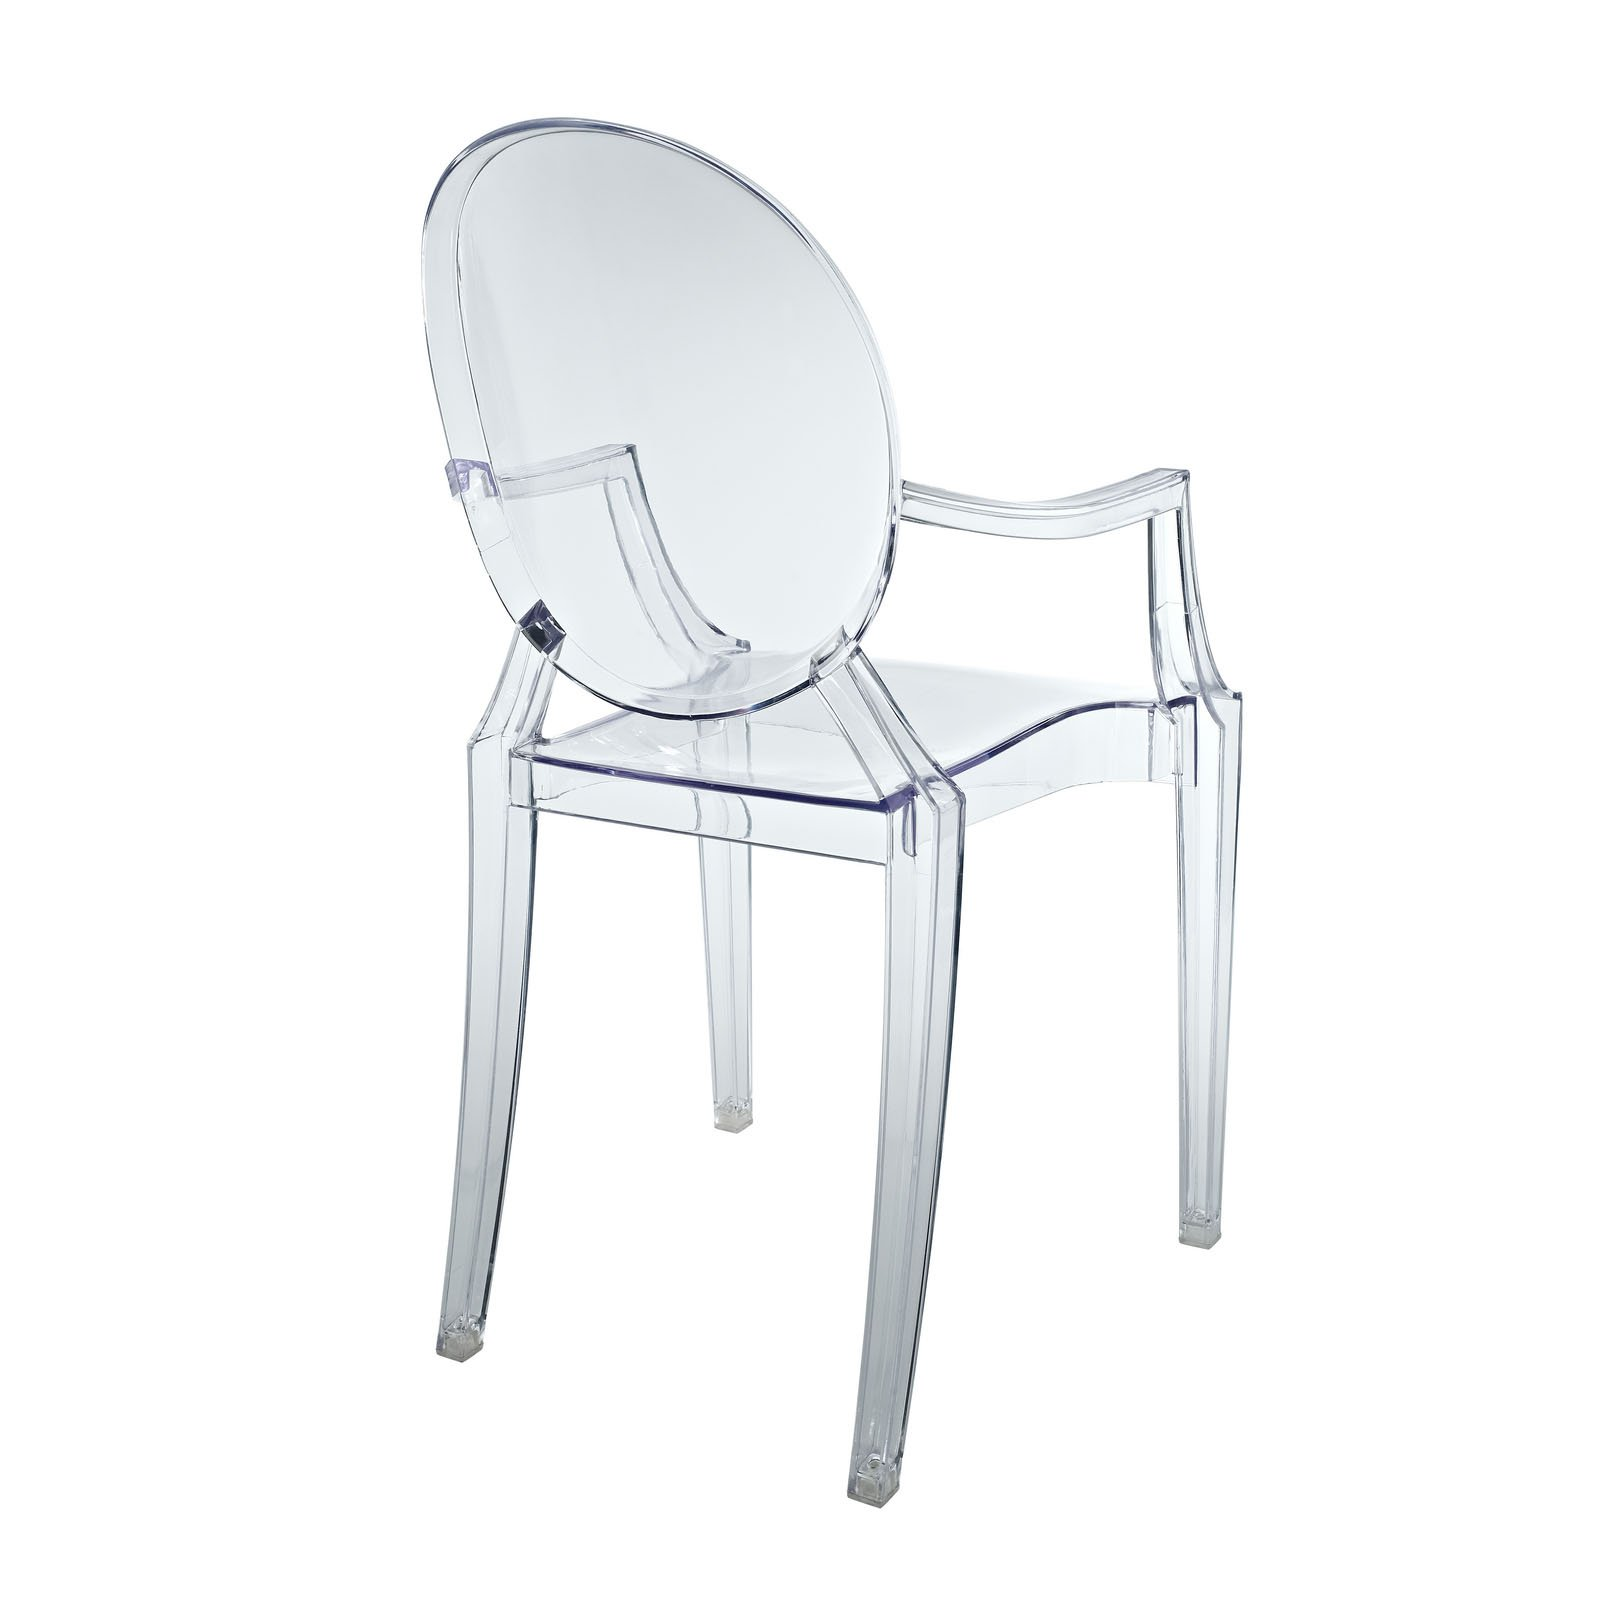 philippe starck ghost chair hanging luxury lexmod style louis for kids